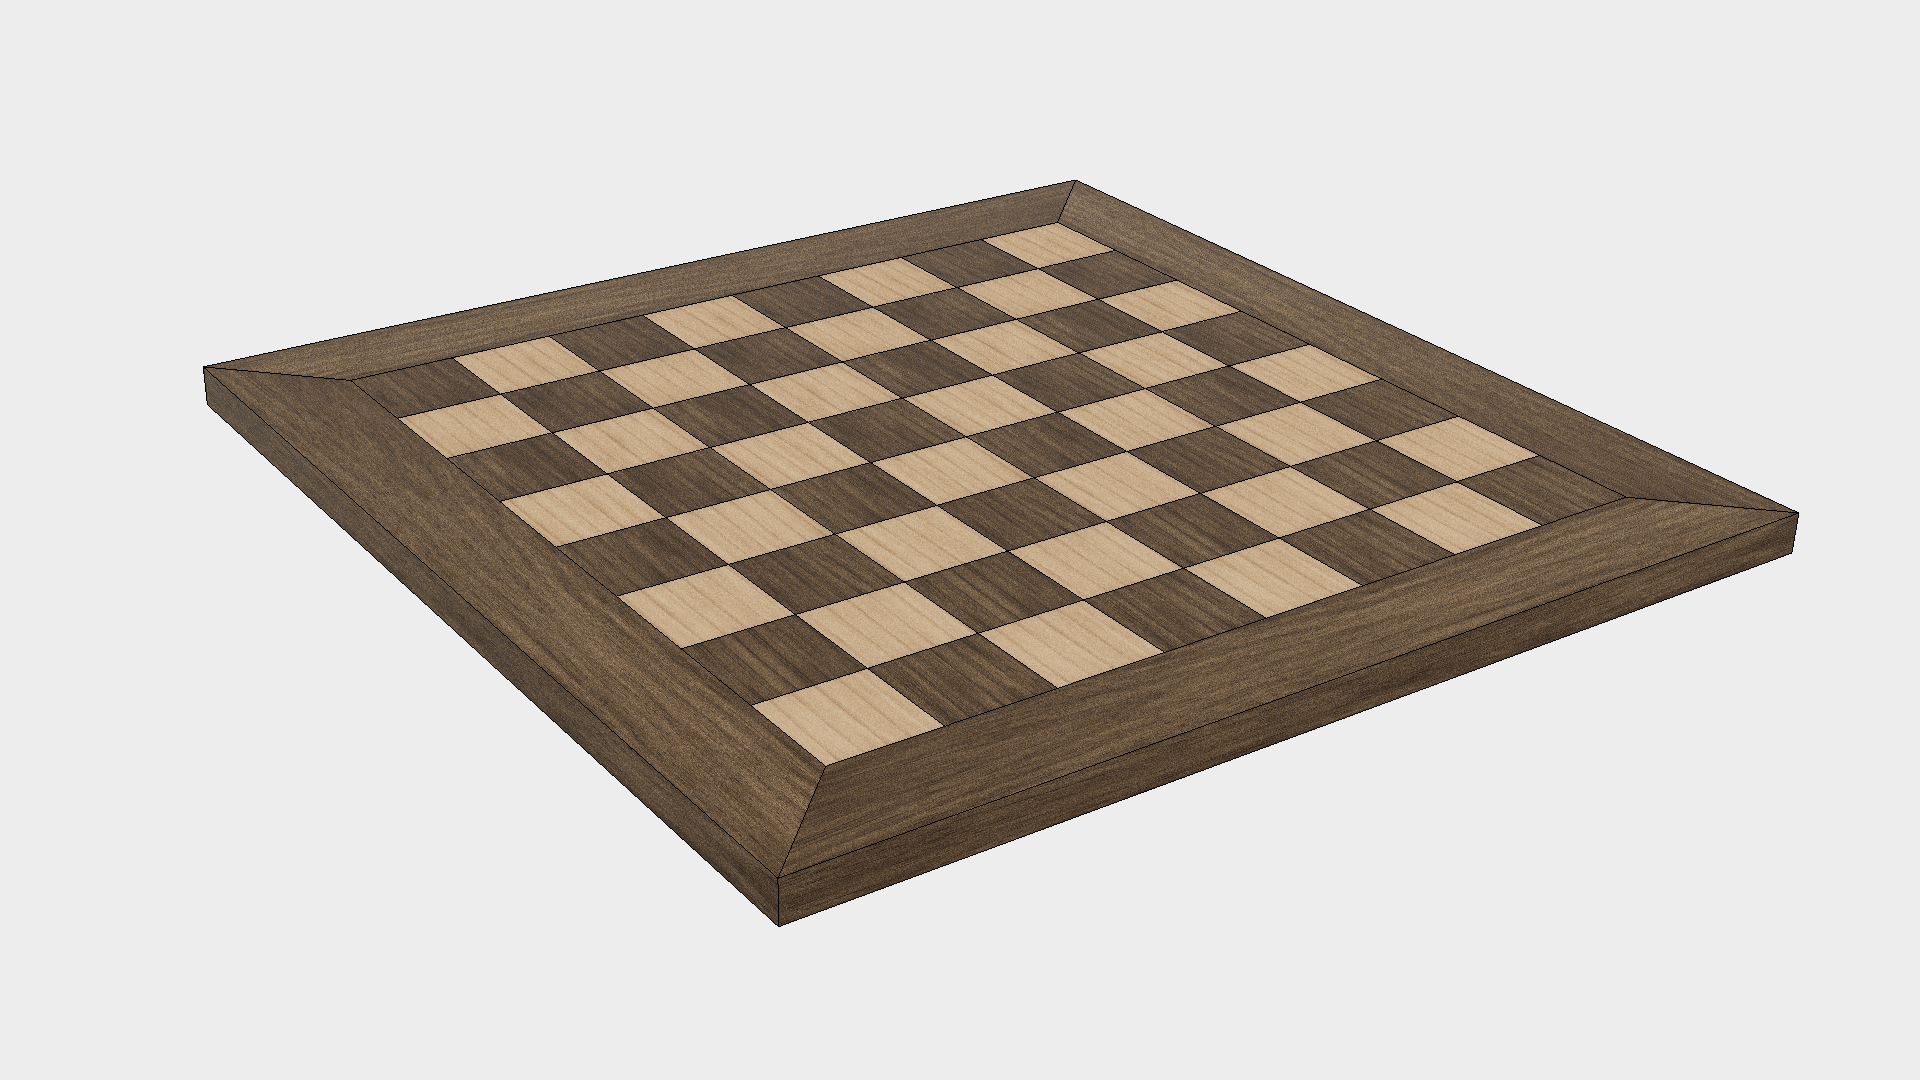 How to Make a Chess Board - Step 8b